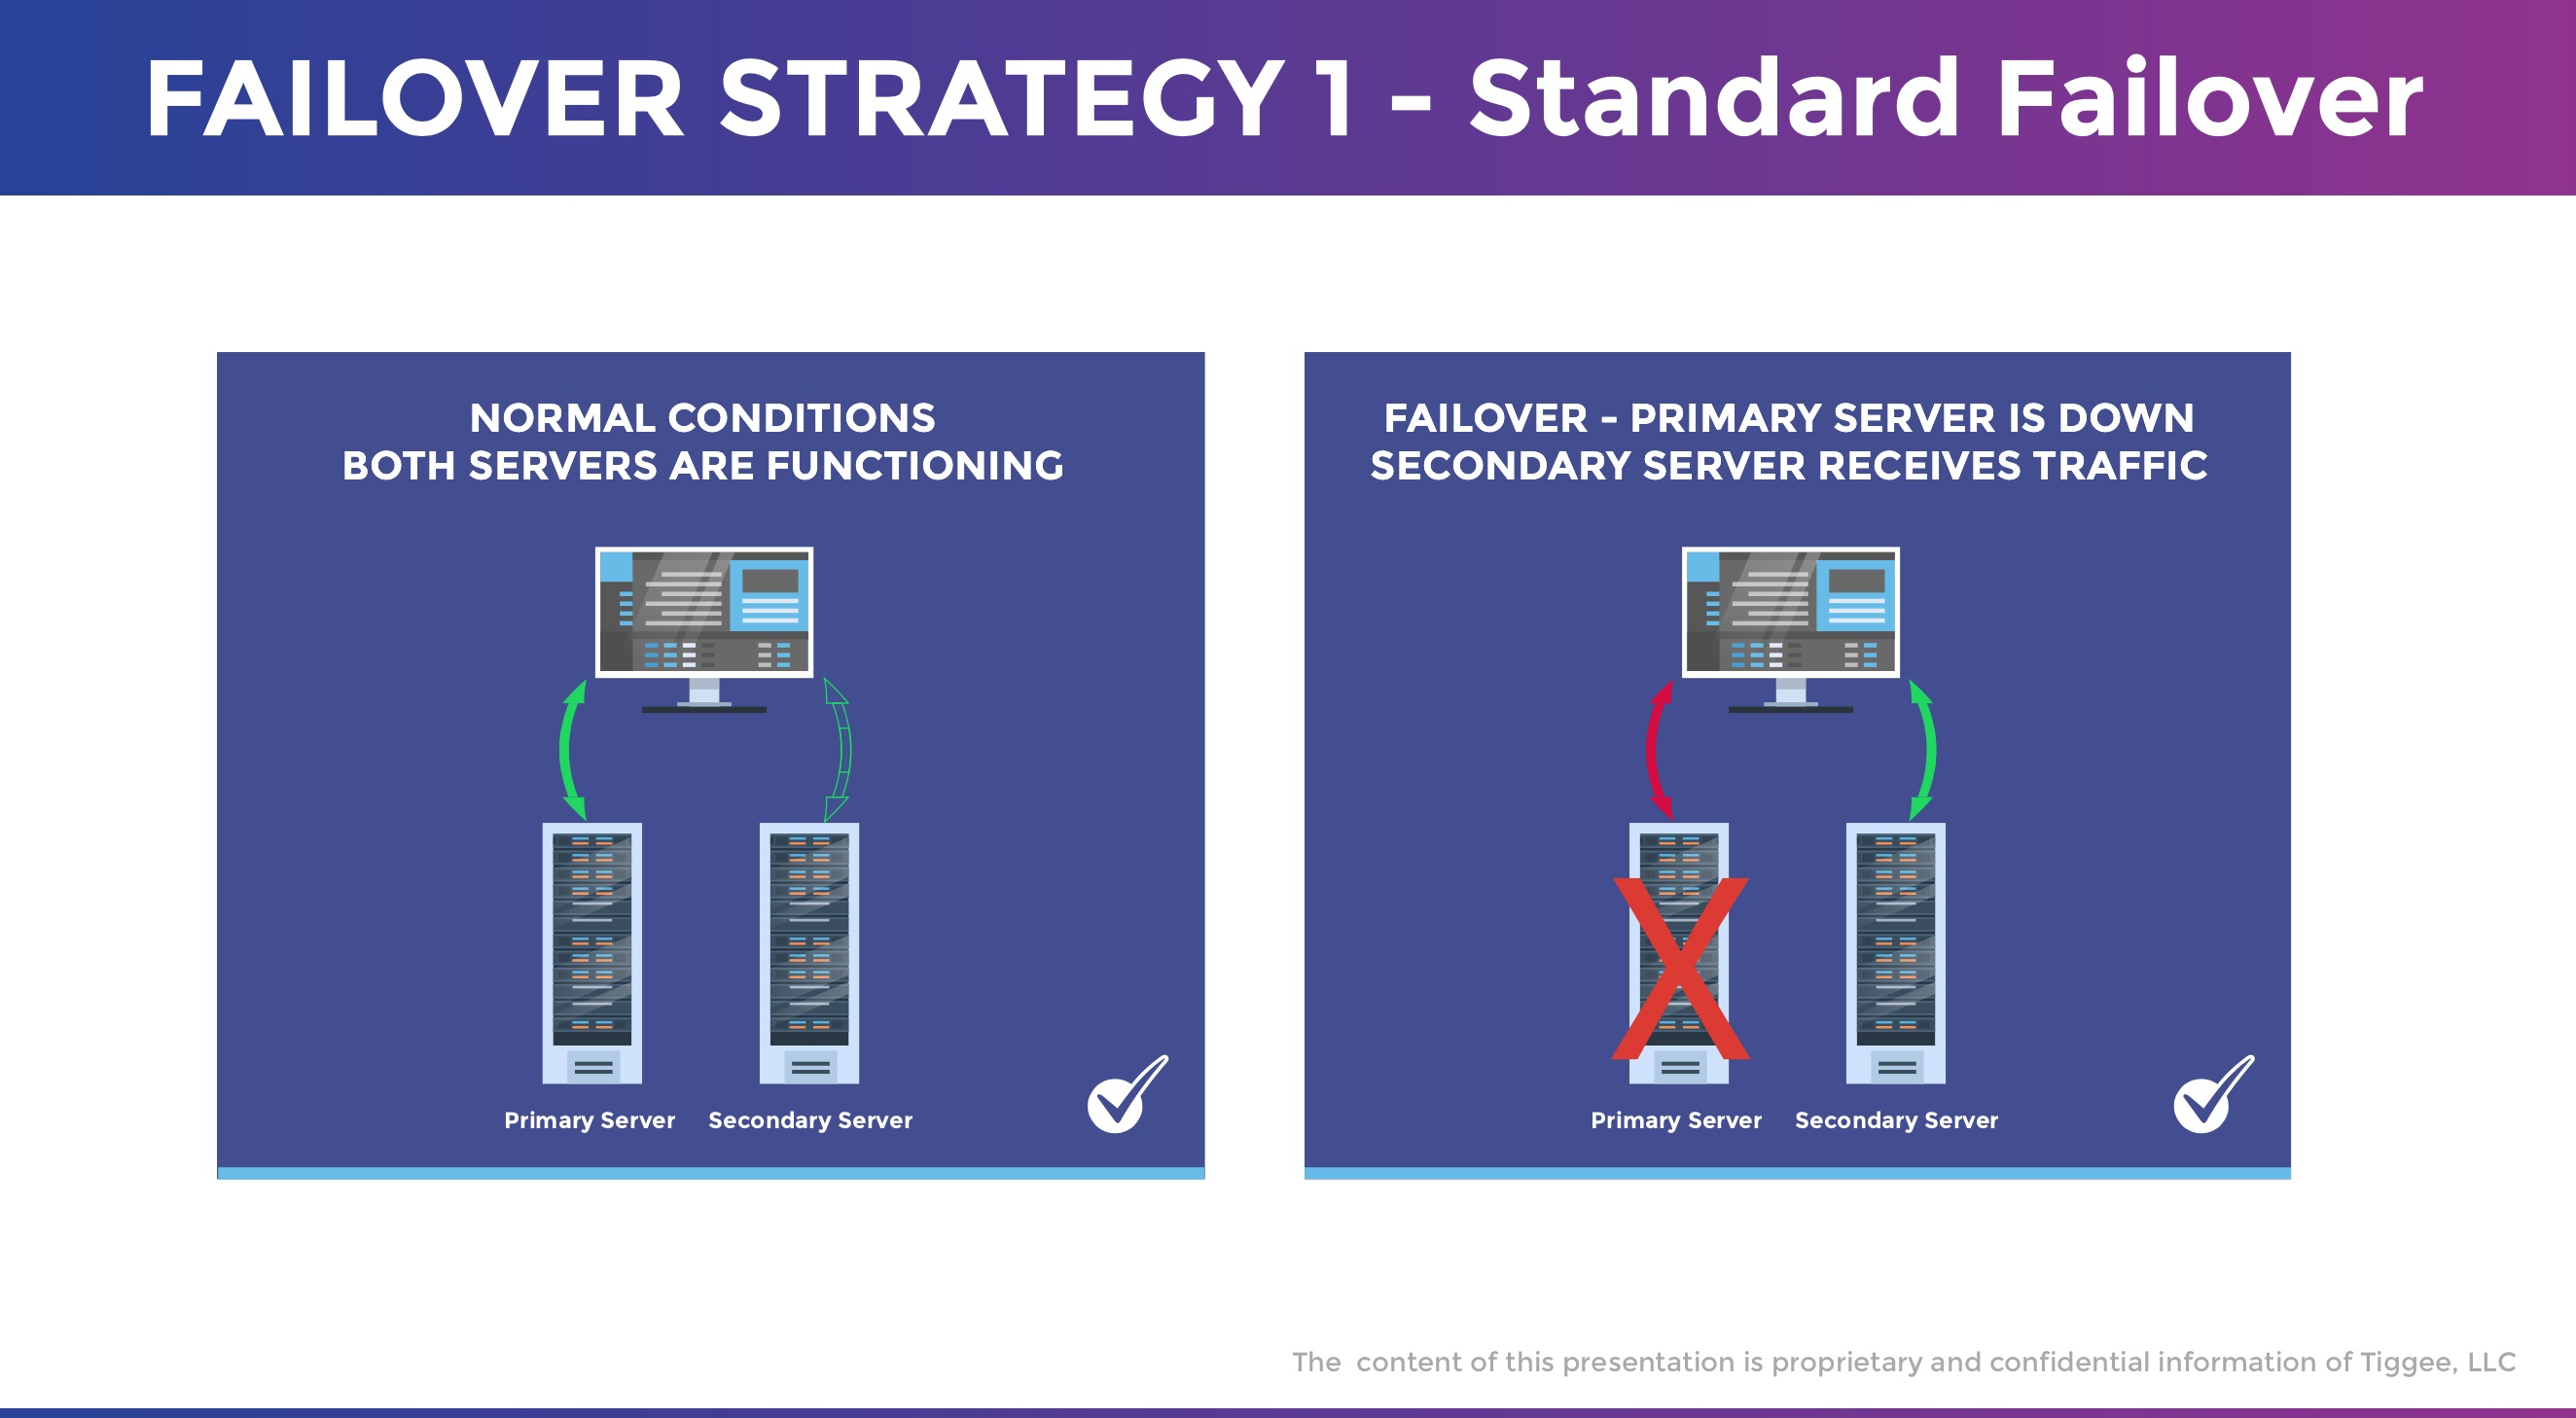 DNS Failover Strategy 1 - Both servers functioning - Failover - Primary server is down and secondary server receives traffic